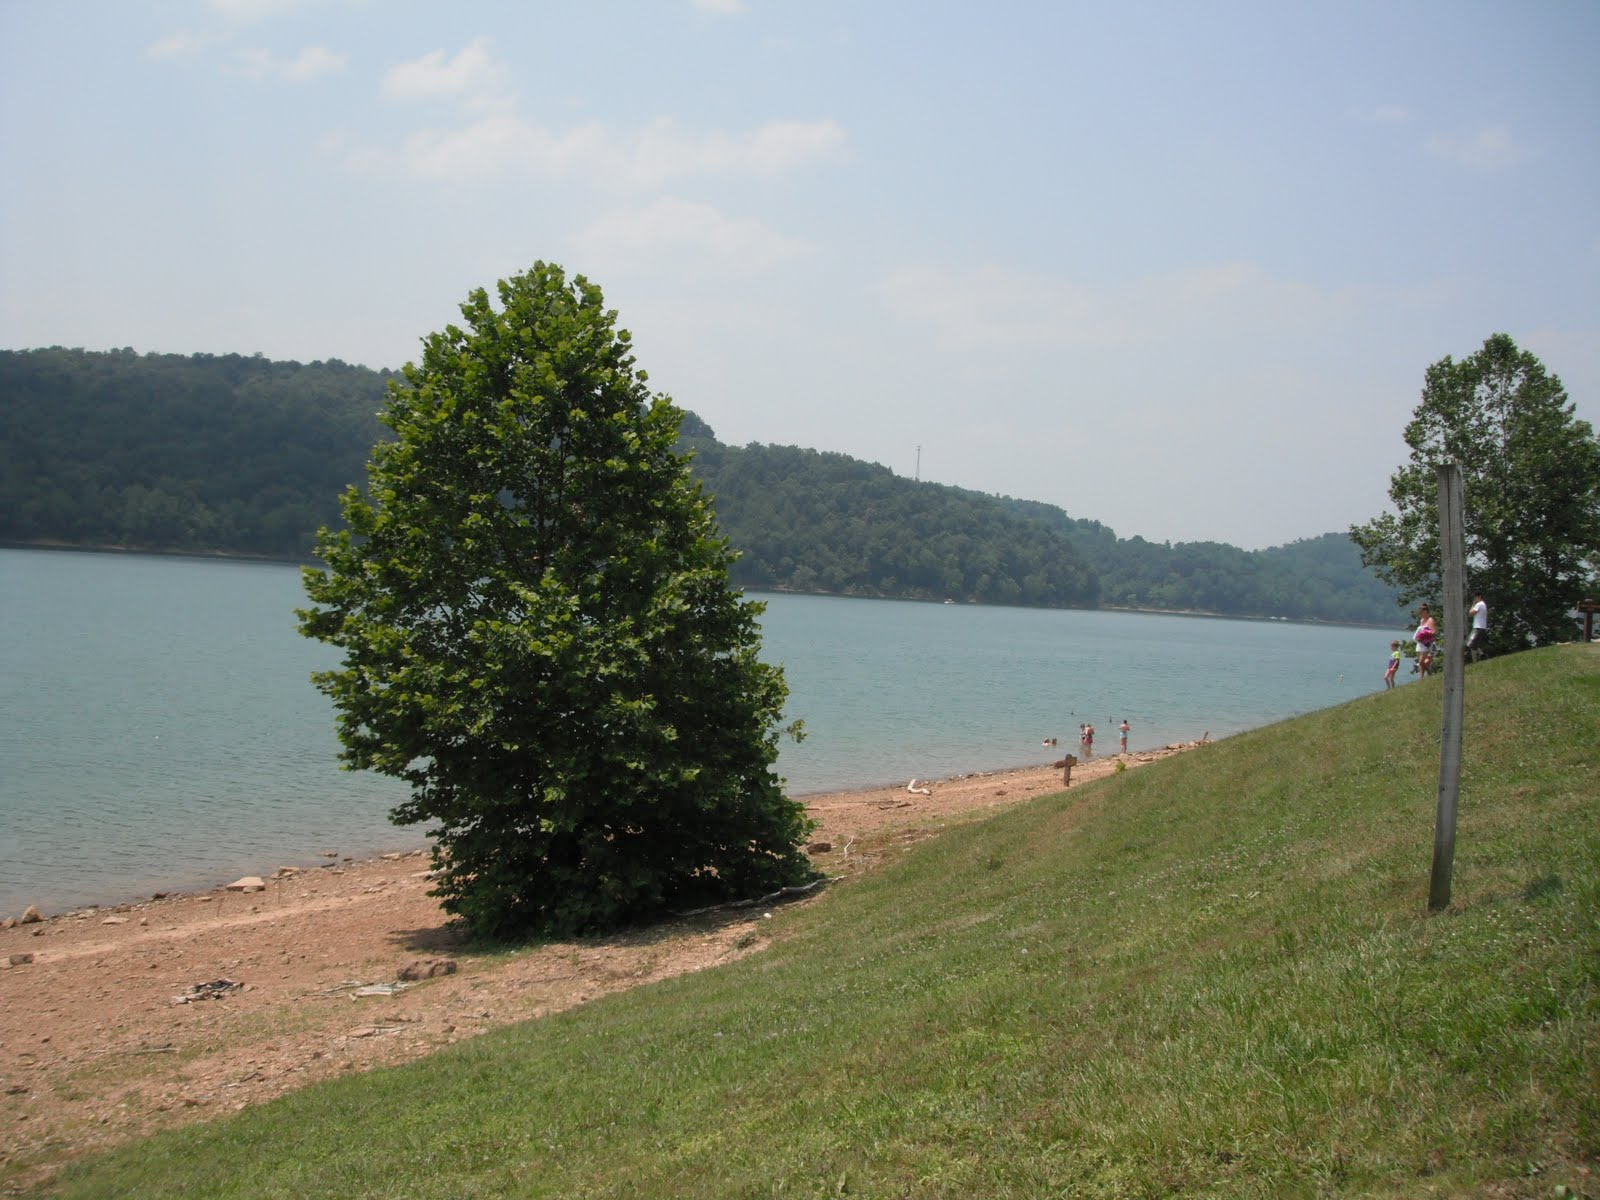 This Is A Beautifully Maintained West Virginia State Park Once We Entered There Was Sign For The Dam Lake Formed Back In 1938 By Damming Up